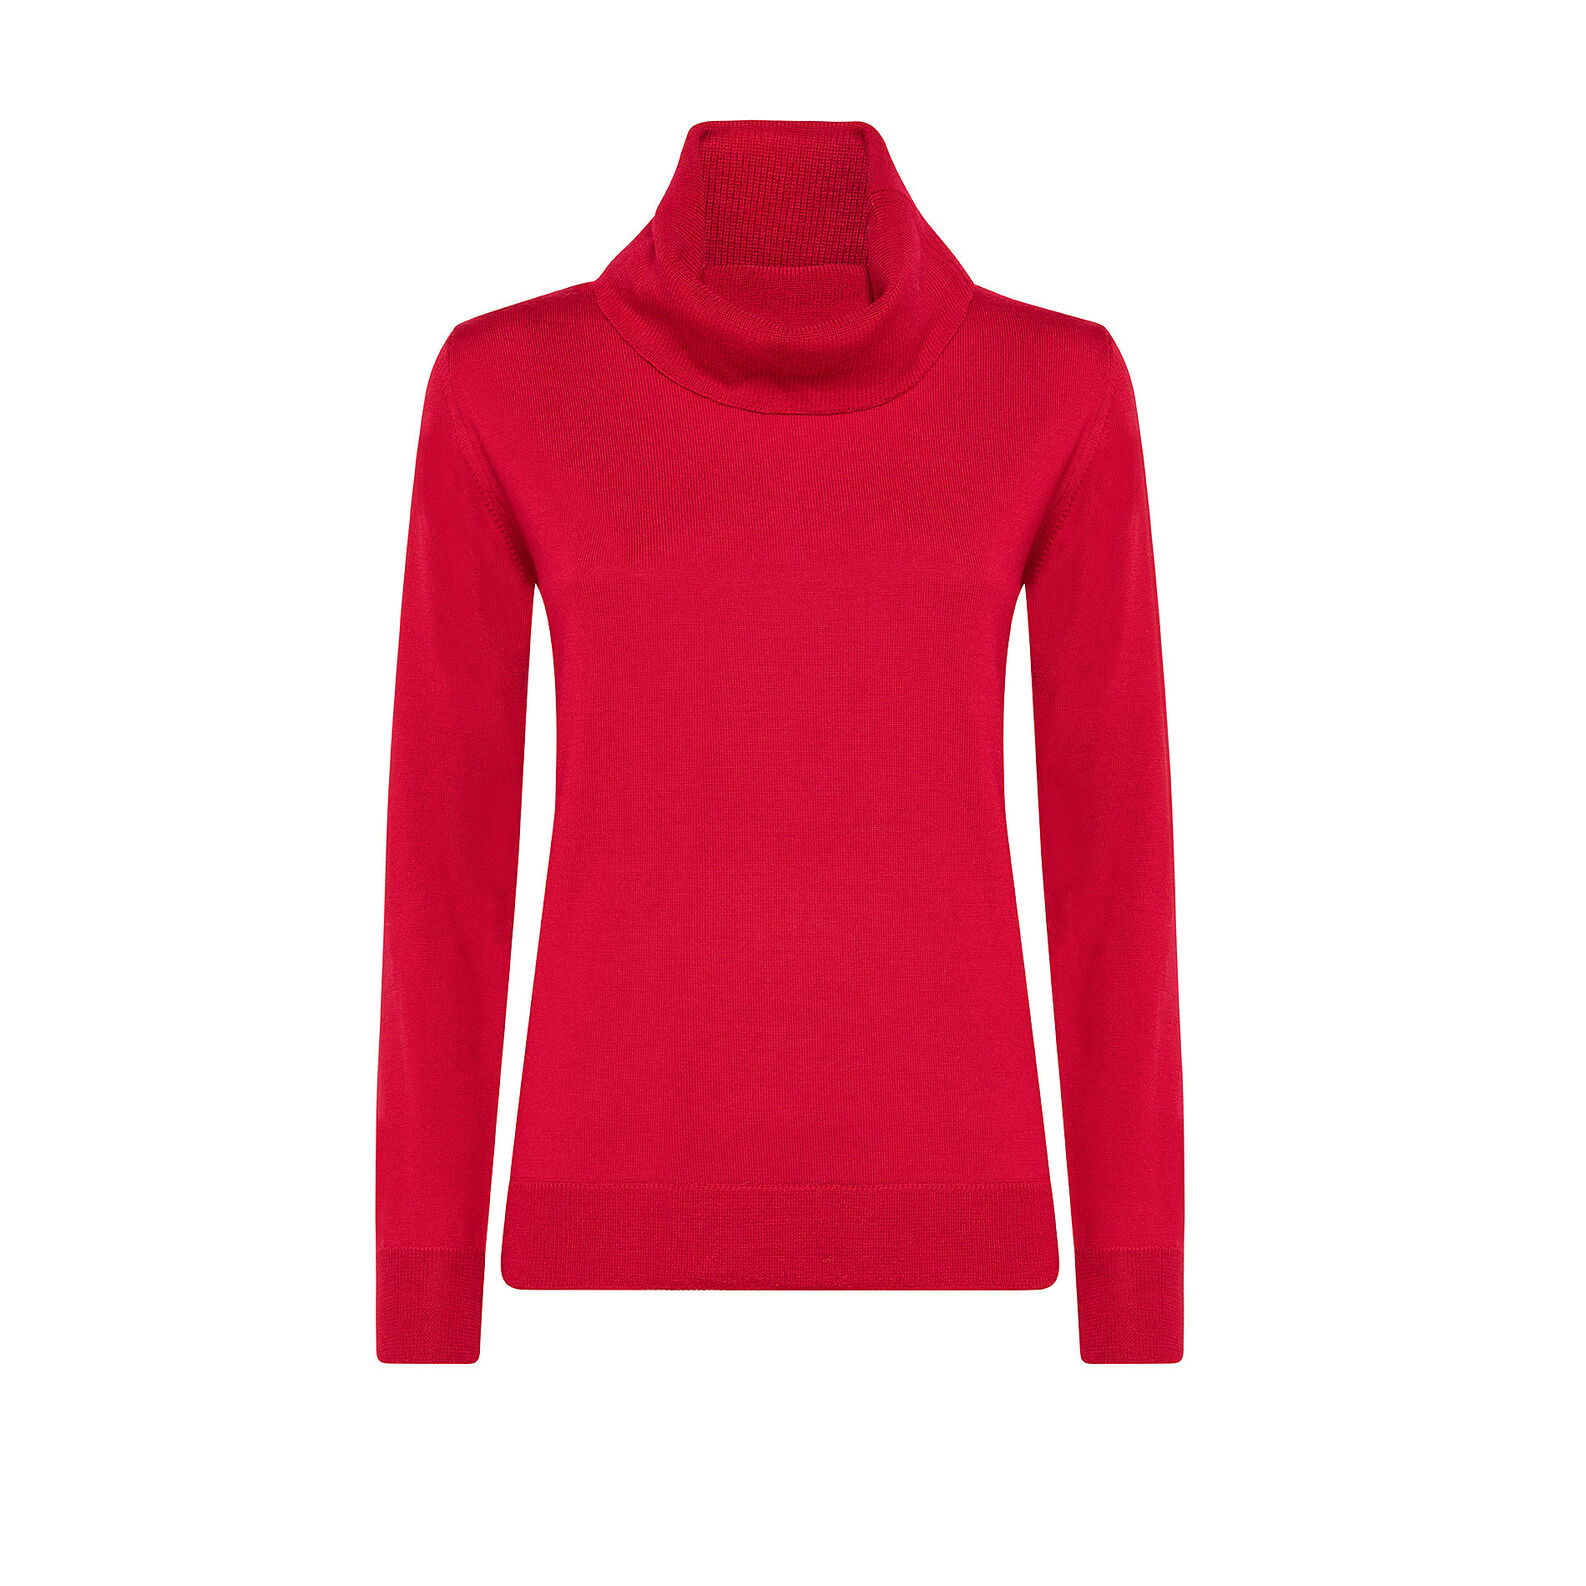 Solid color merino wool pullover